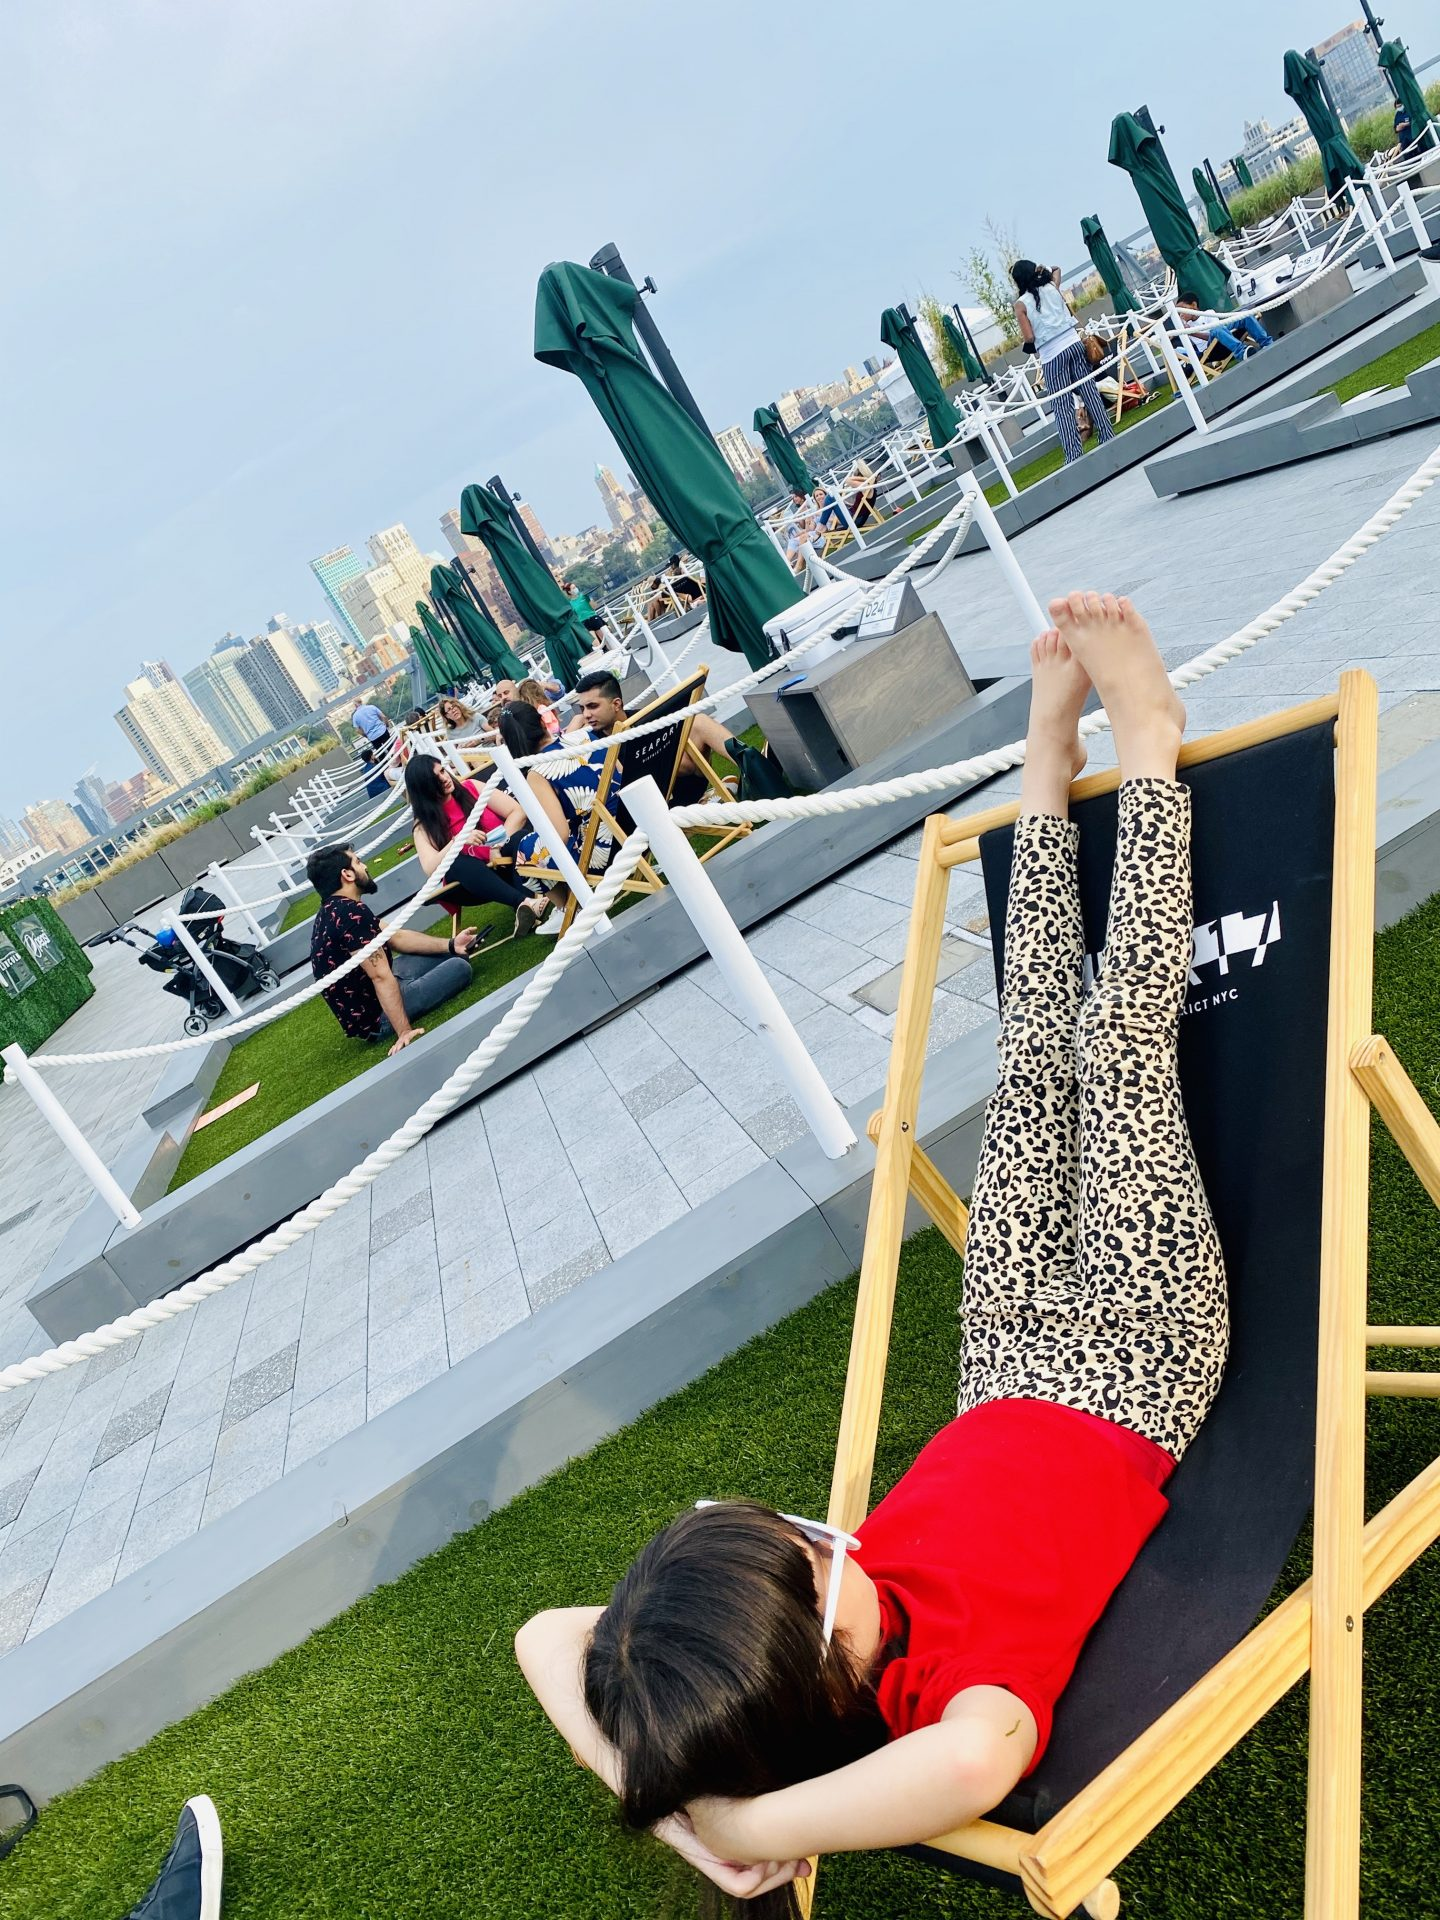 south street seaport, the greens, ampia rooftop, best nyc rooftop, best nyc outdoor dining, financial center restaurants, where to eat nyc, instagrammable nyc